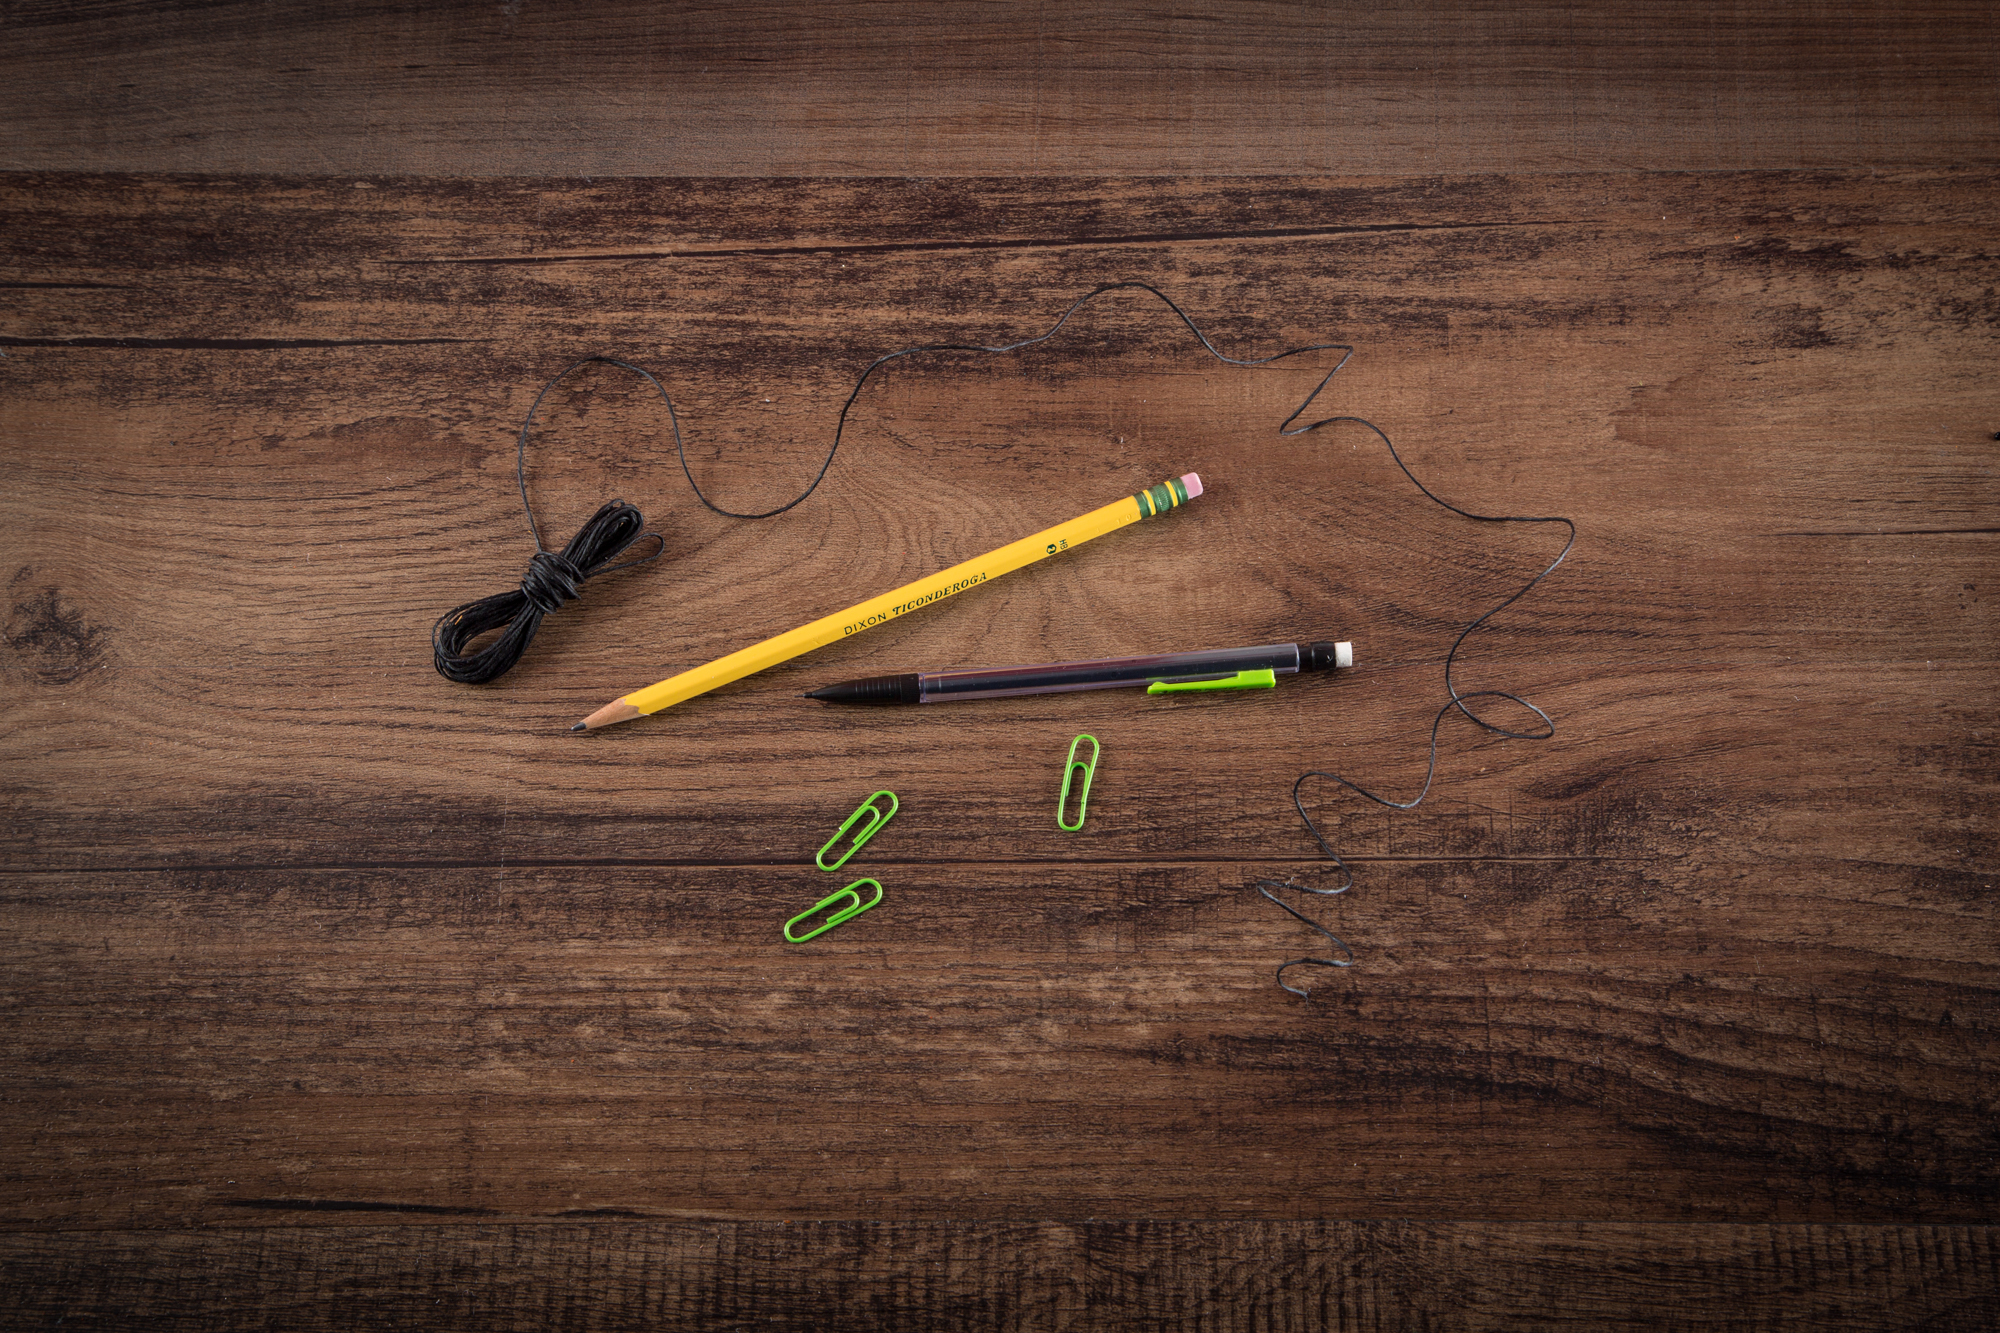 String, pencils, and paperclips on a wooden table.